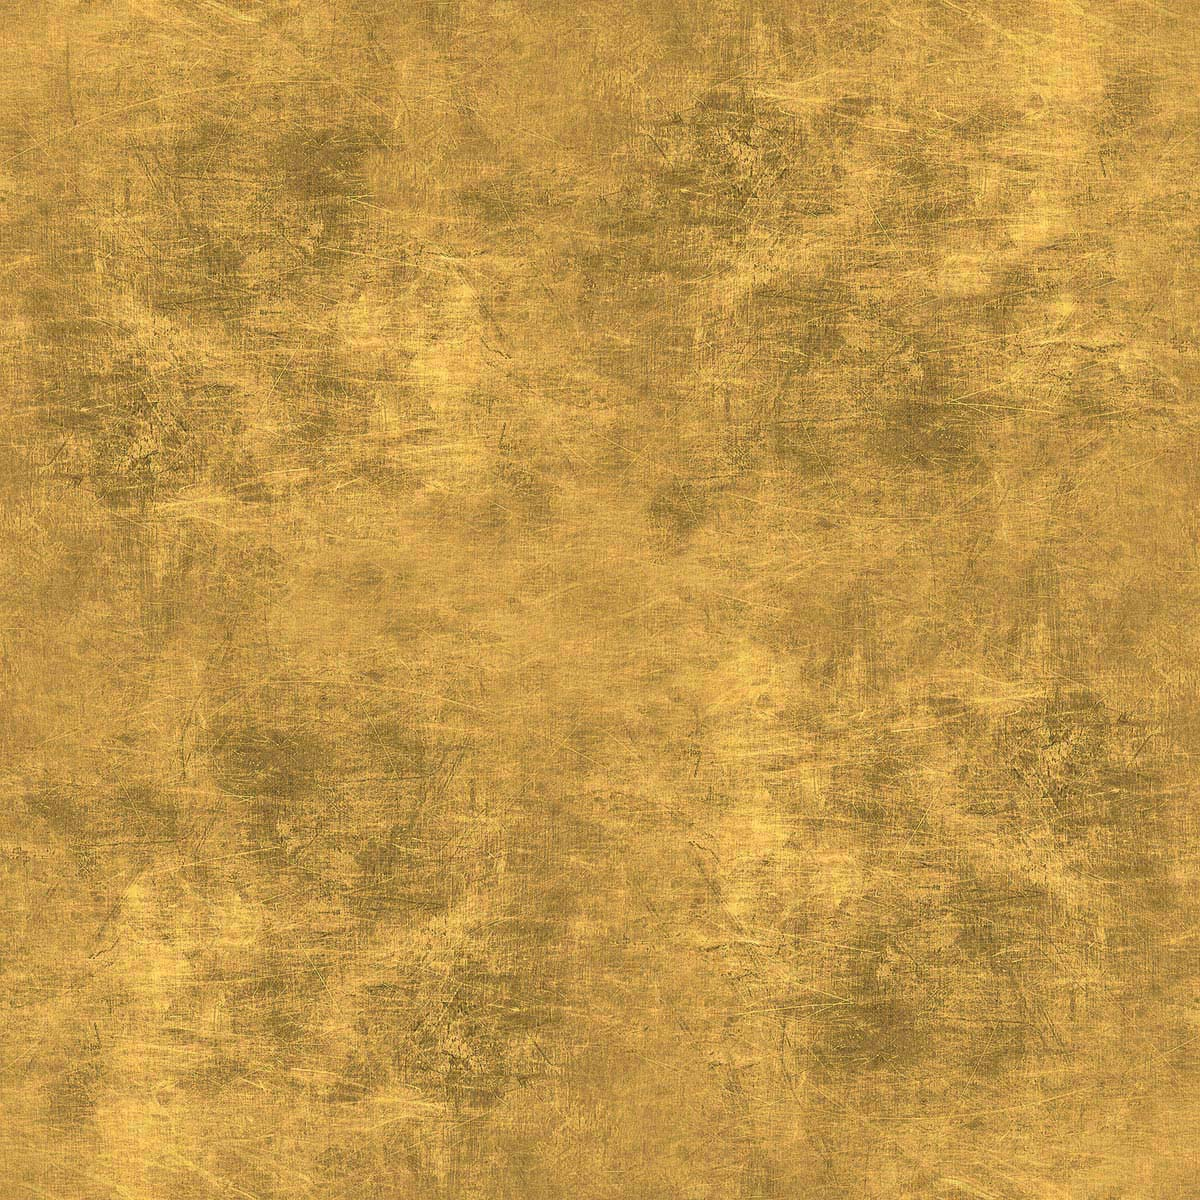 Brass Texture Seamless Brass Texture i Attach The